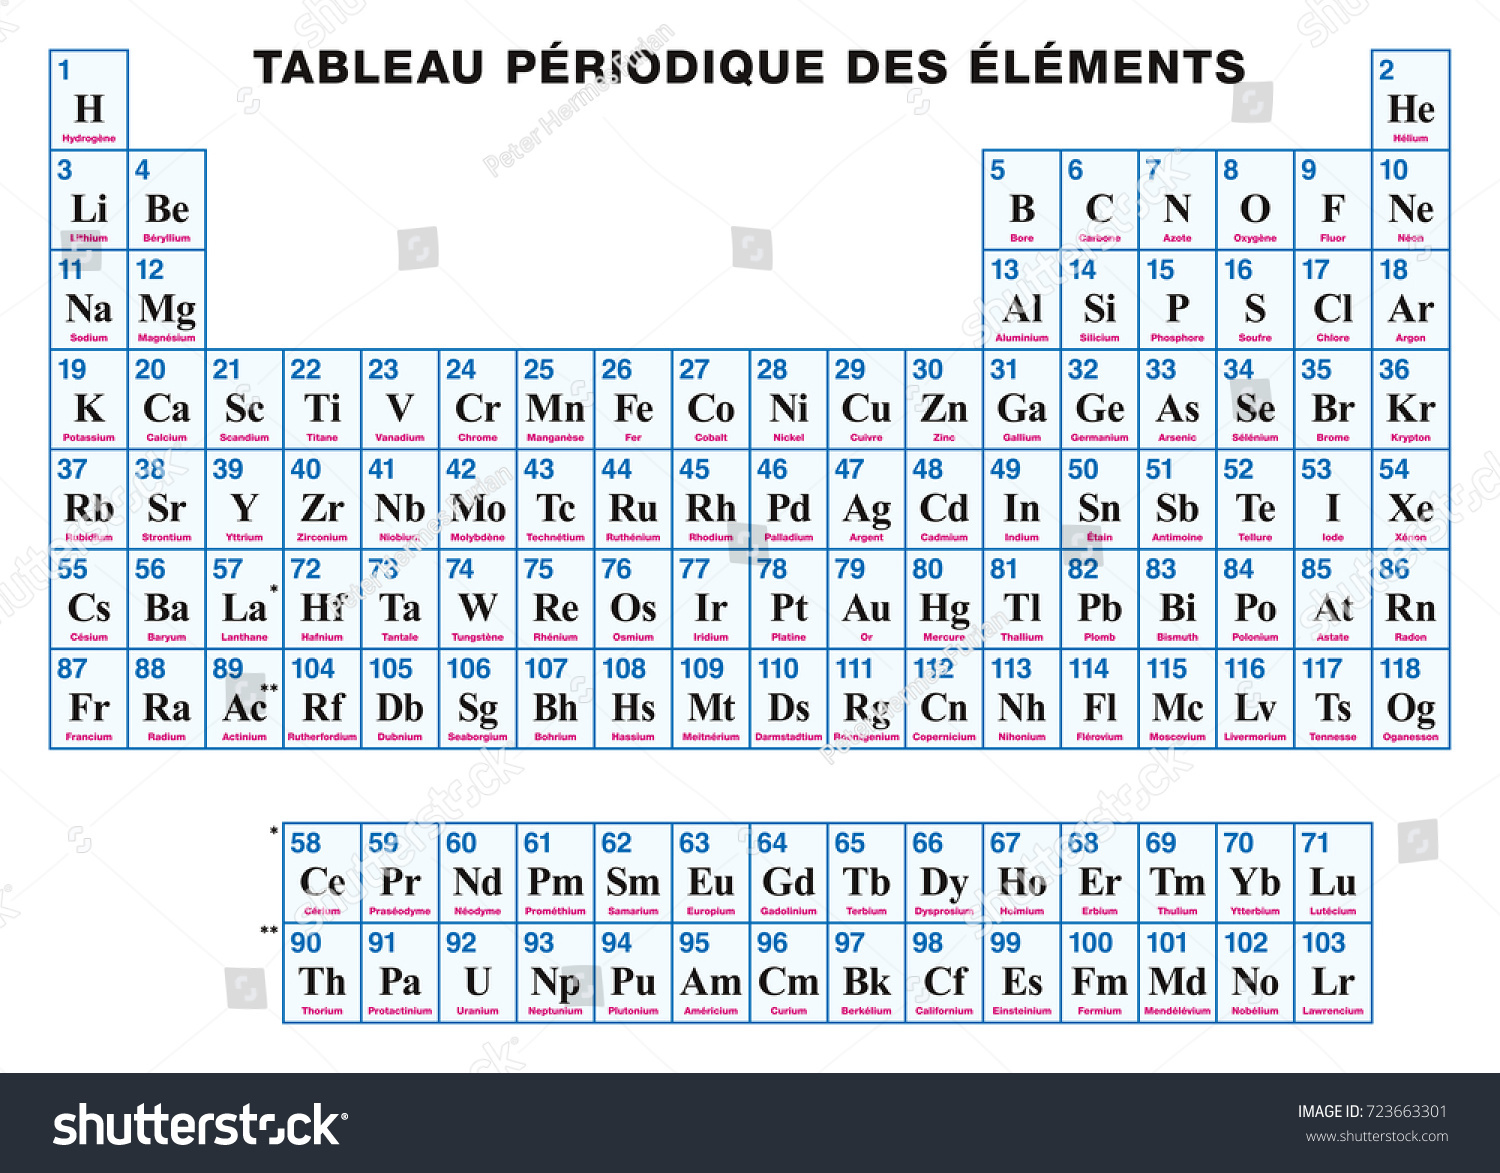 Ne on periodic table images periodic table images quiz on periodic table 1 20 aviongoldcorp periodic table of elements quiz 1 80 aviongoldcorp gamestrikefo gamestrikefo Images